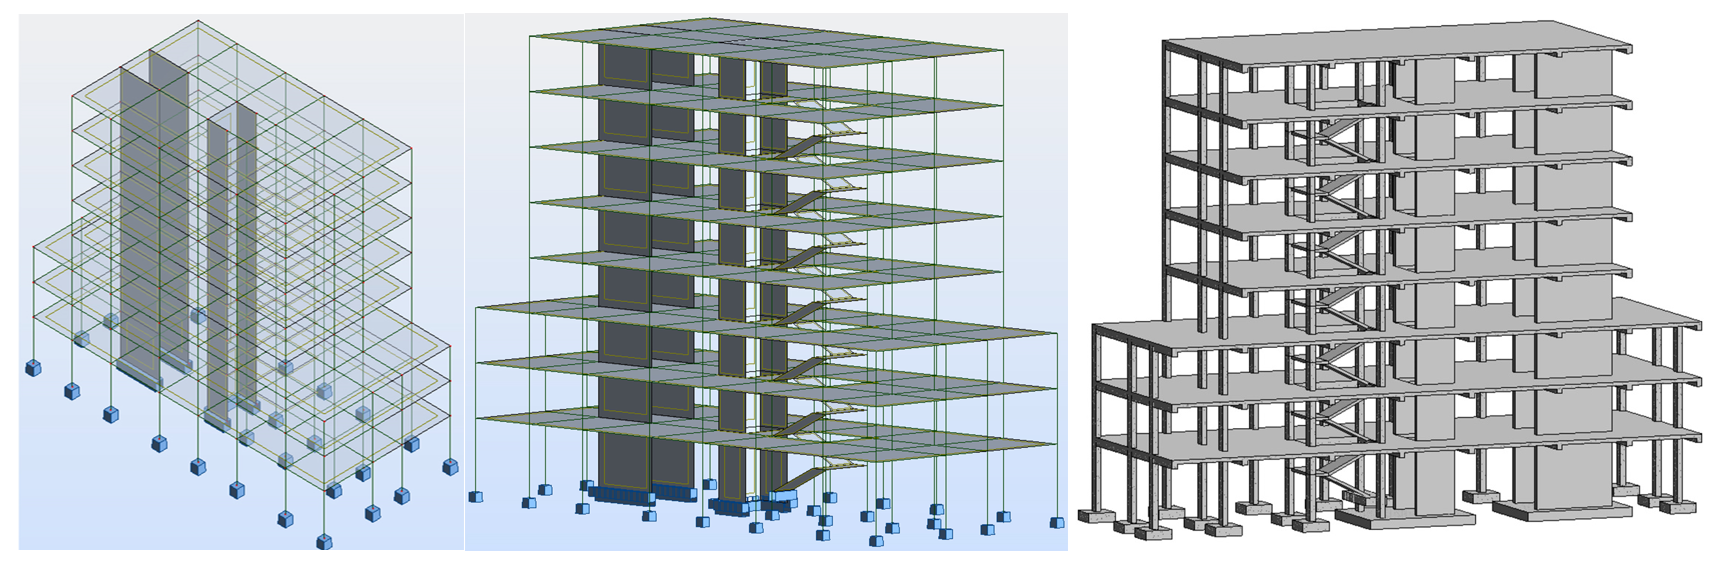 IJCI - Structural Design Developed in a BIM Environment: Benefits